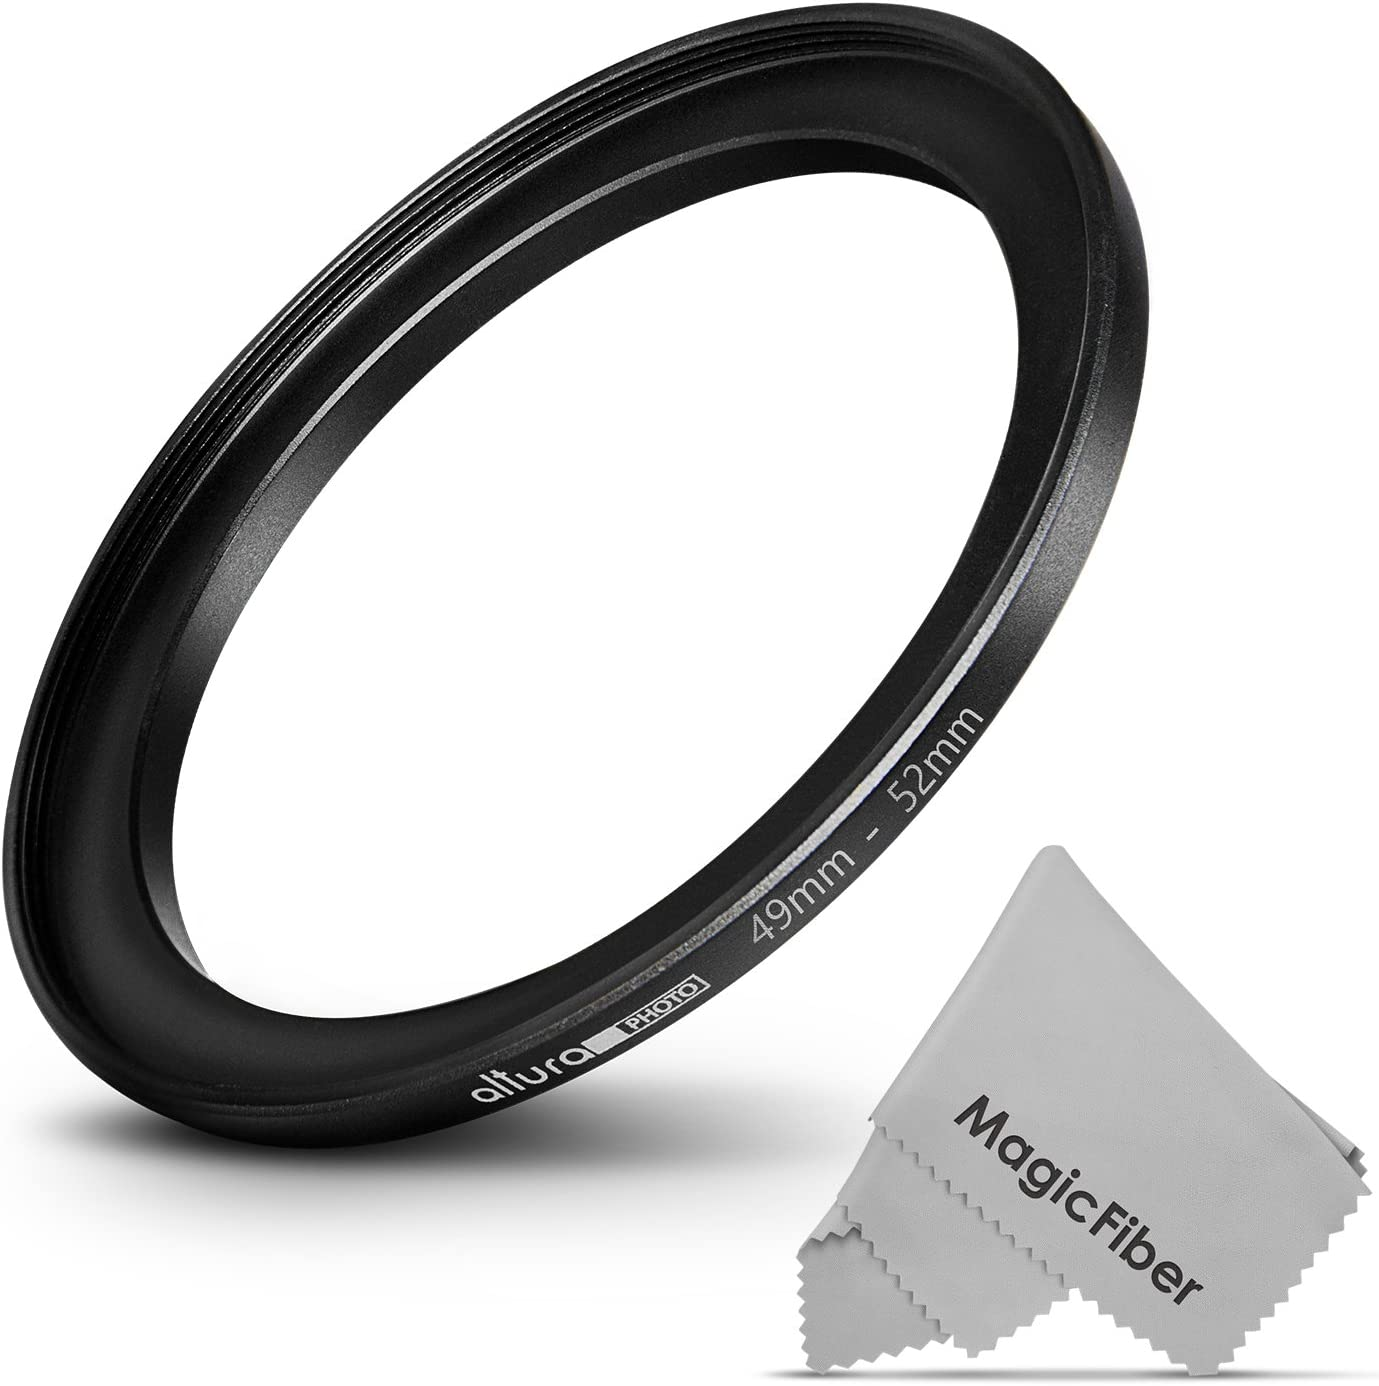 34mm-52mm 34mm to 52mm  34-52mm Step Up Ring Filter Adapter for Camera Lens